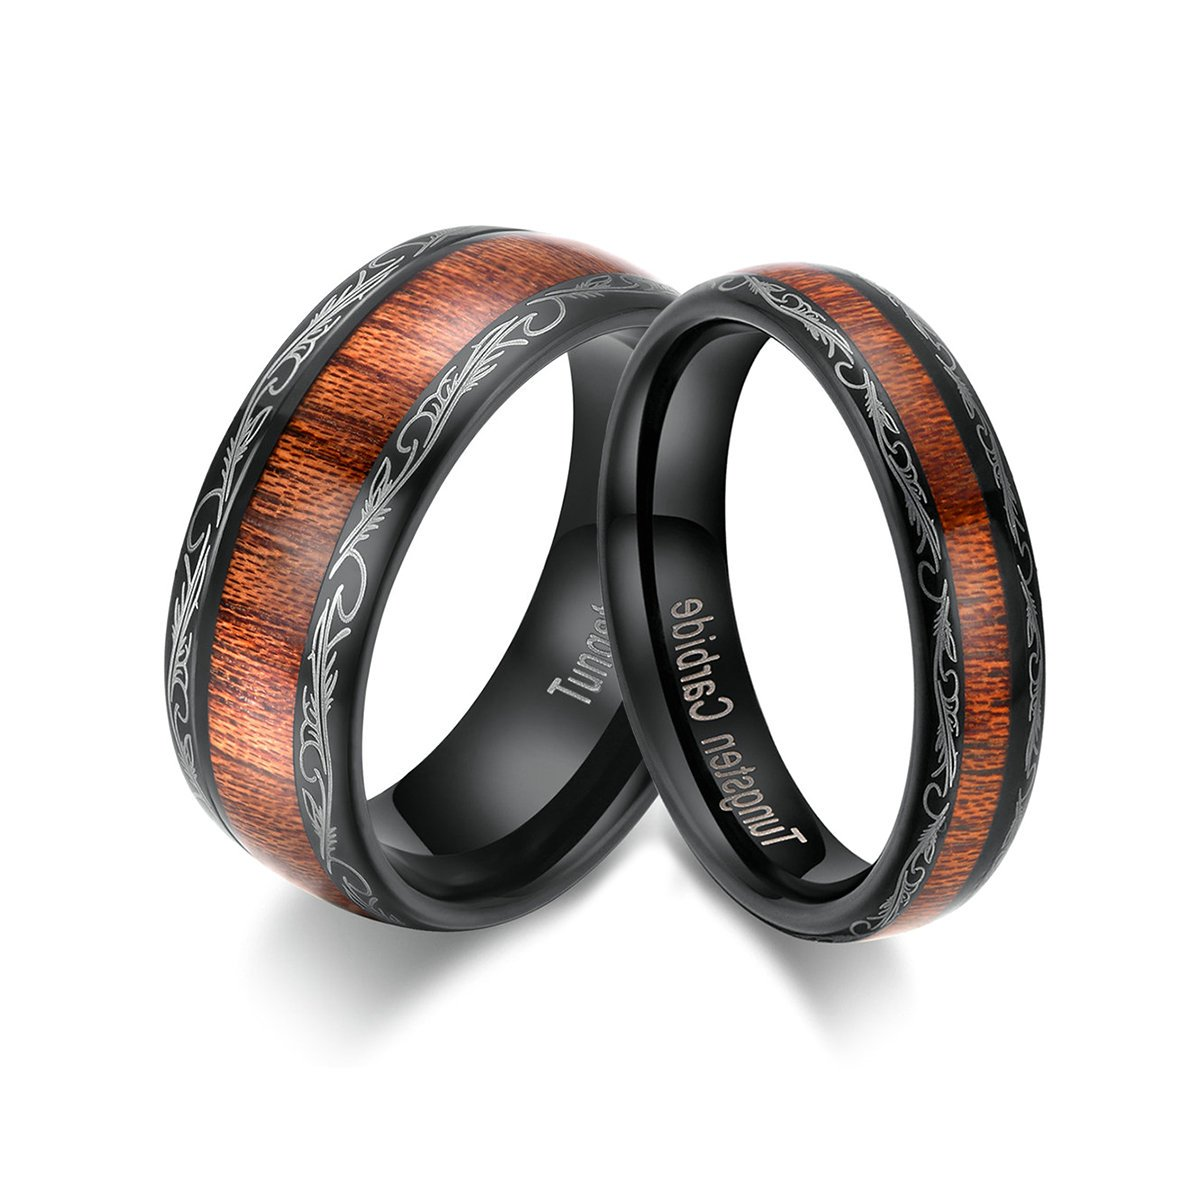 5mm/8mm Wedding Bands Domed Koa Wood Tungsten Carbide Couple Rings Black Color Comfort Fit Tianyi TYWGCP121